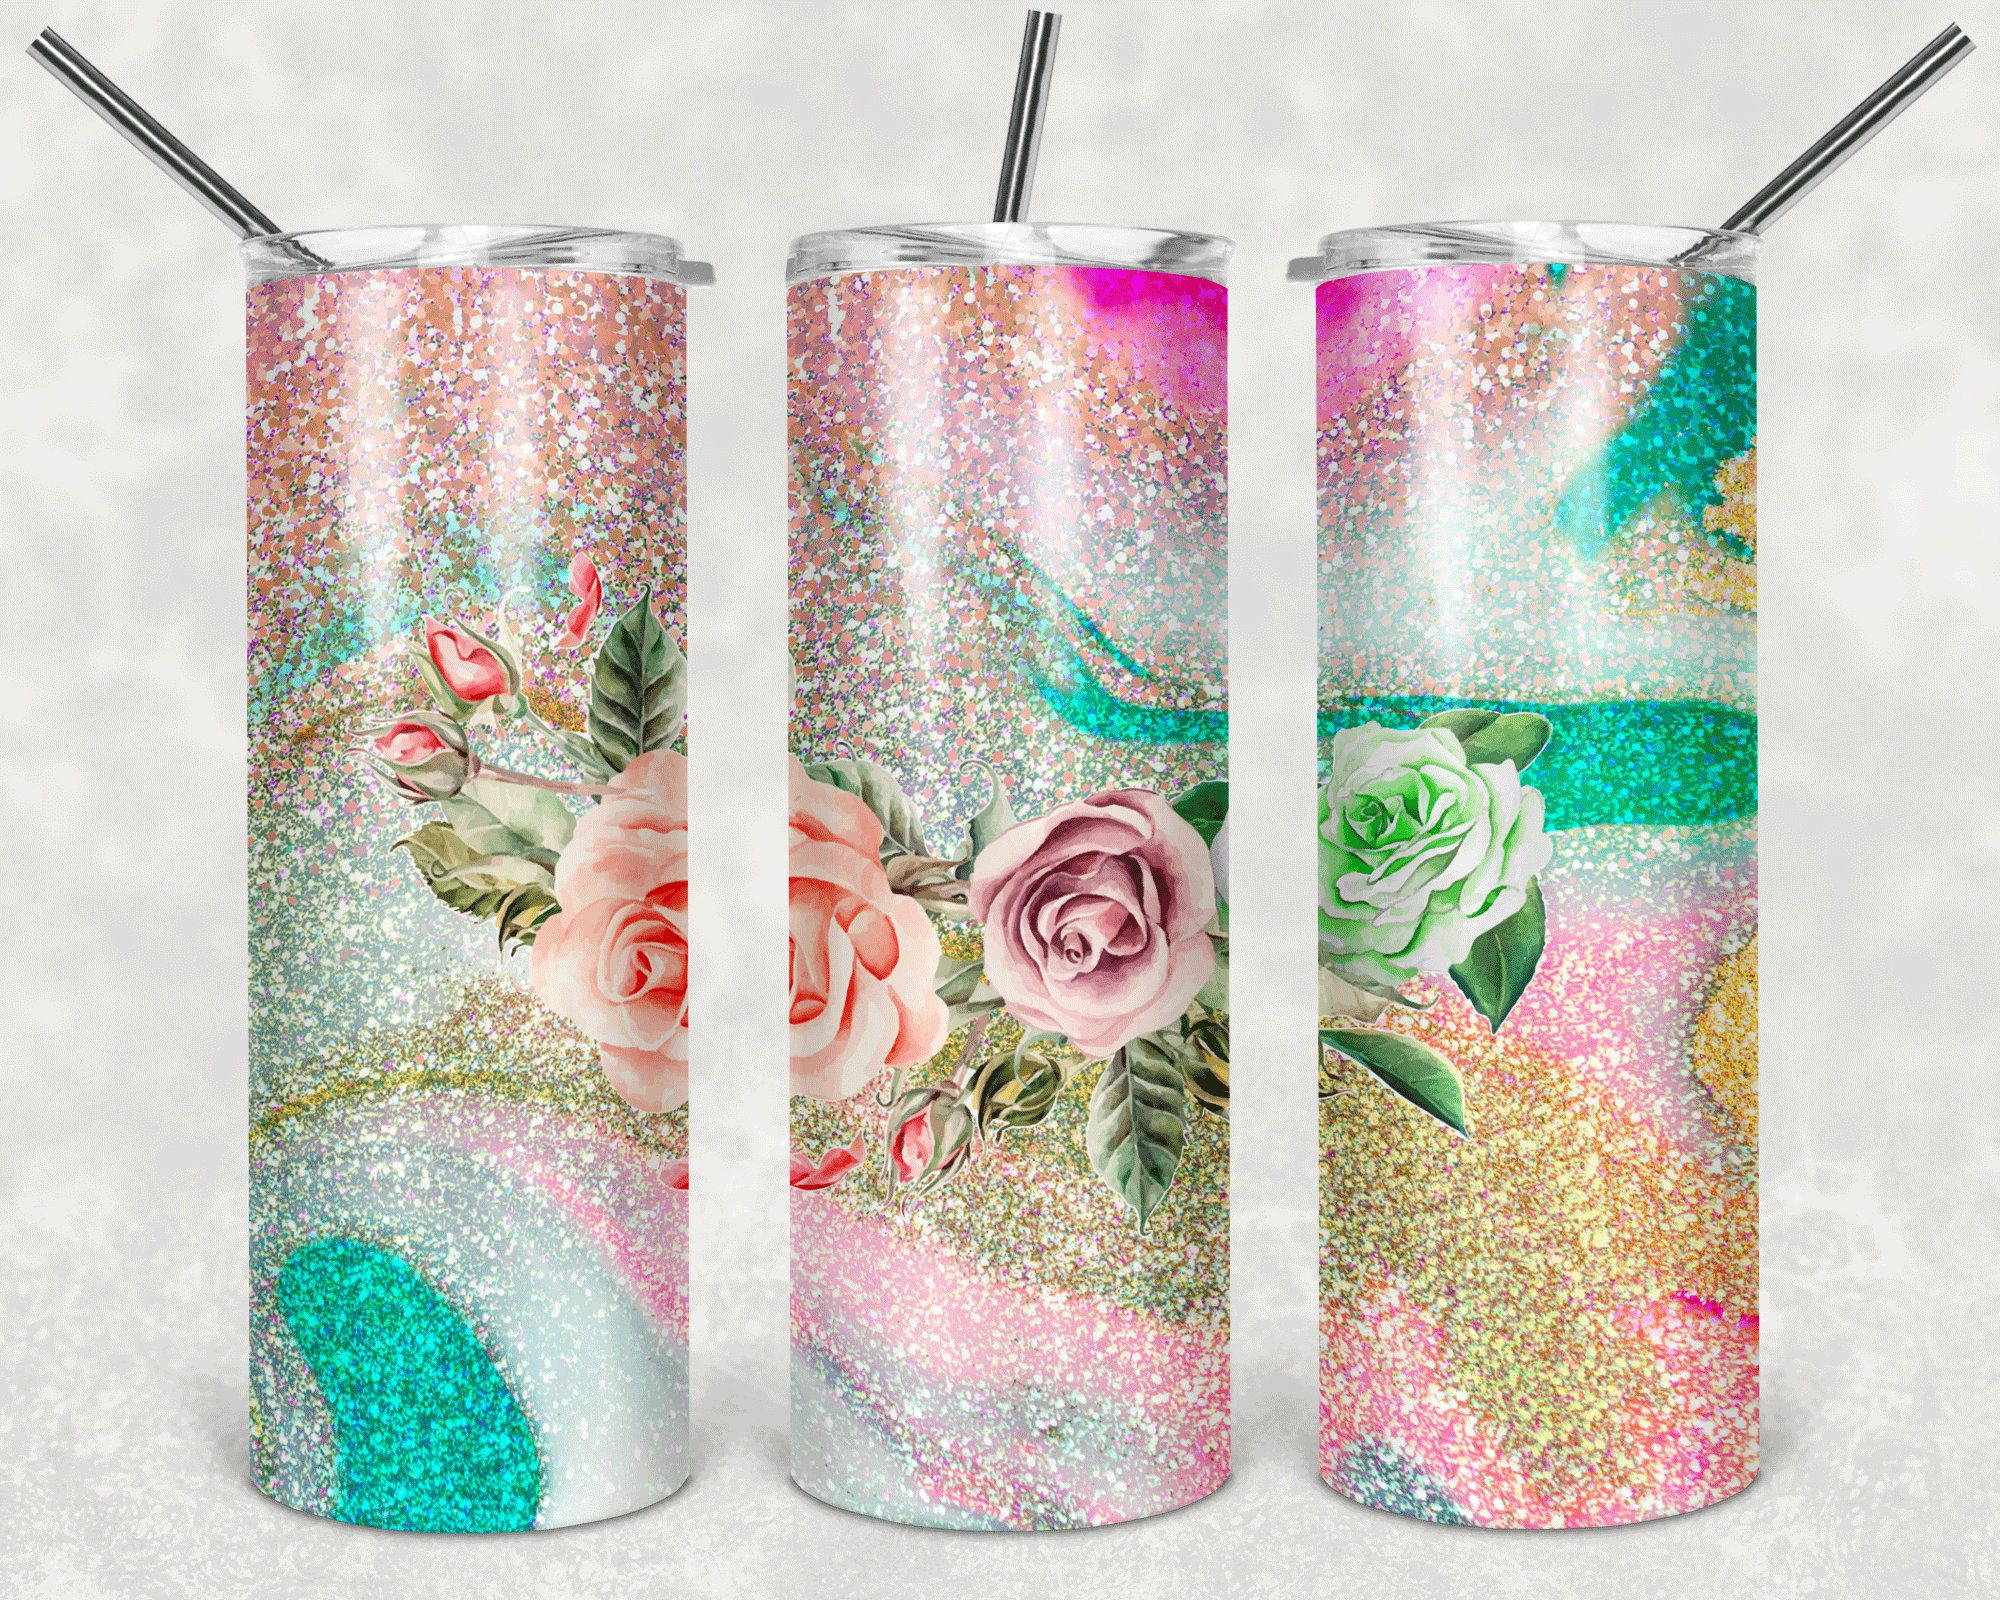 20 ounce Straight or Skinny Tumbler Pink Floral Glitter Ready to Press Pink 30oz Tumbler Sublimation Transfer